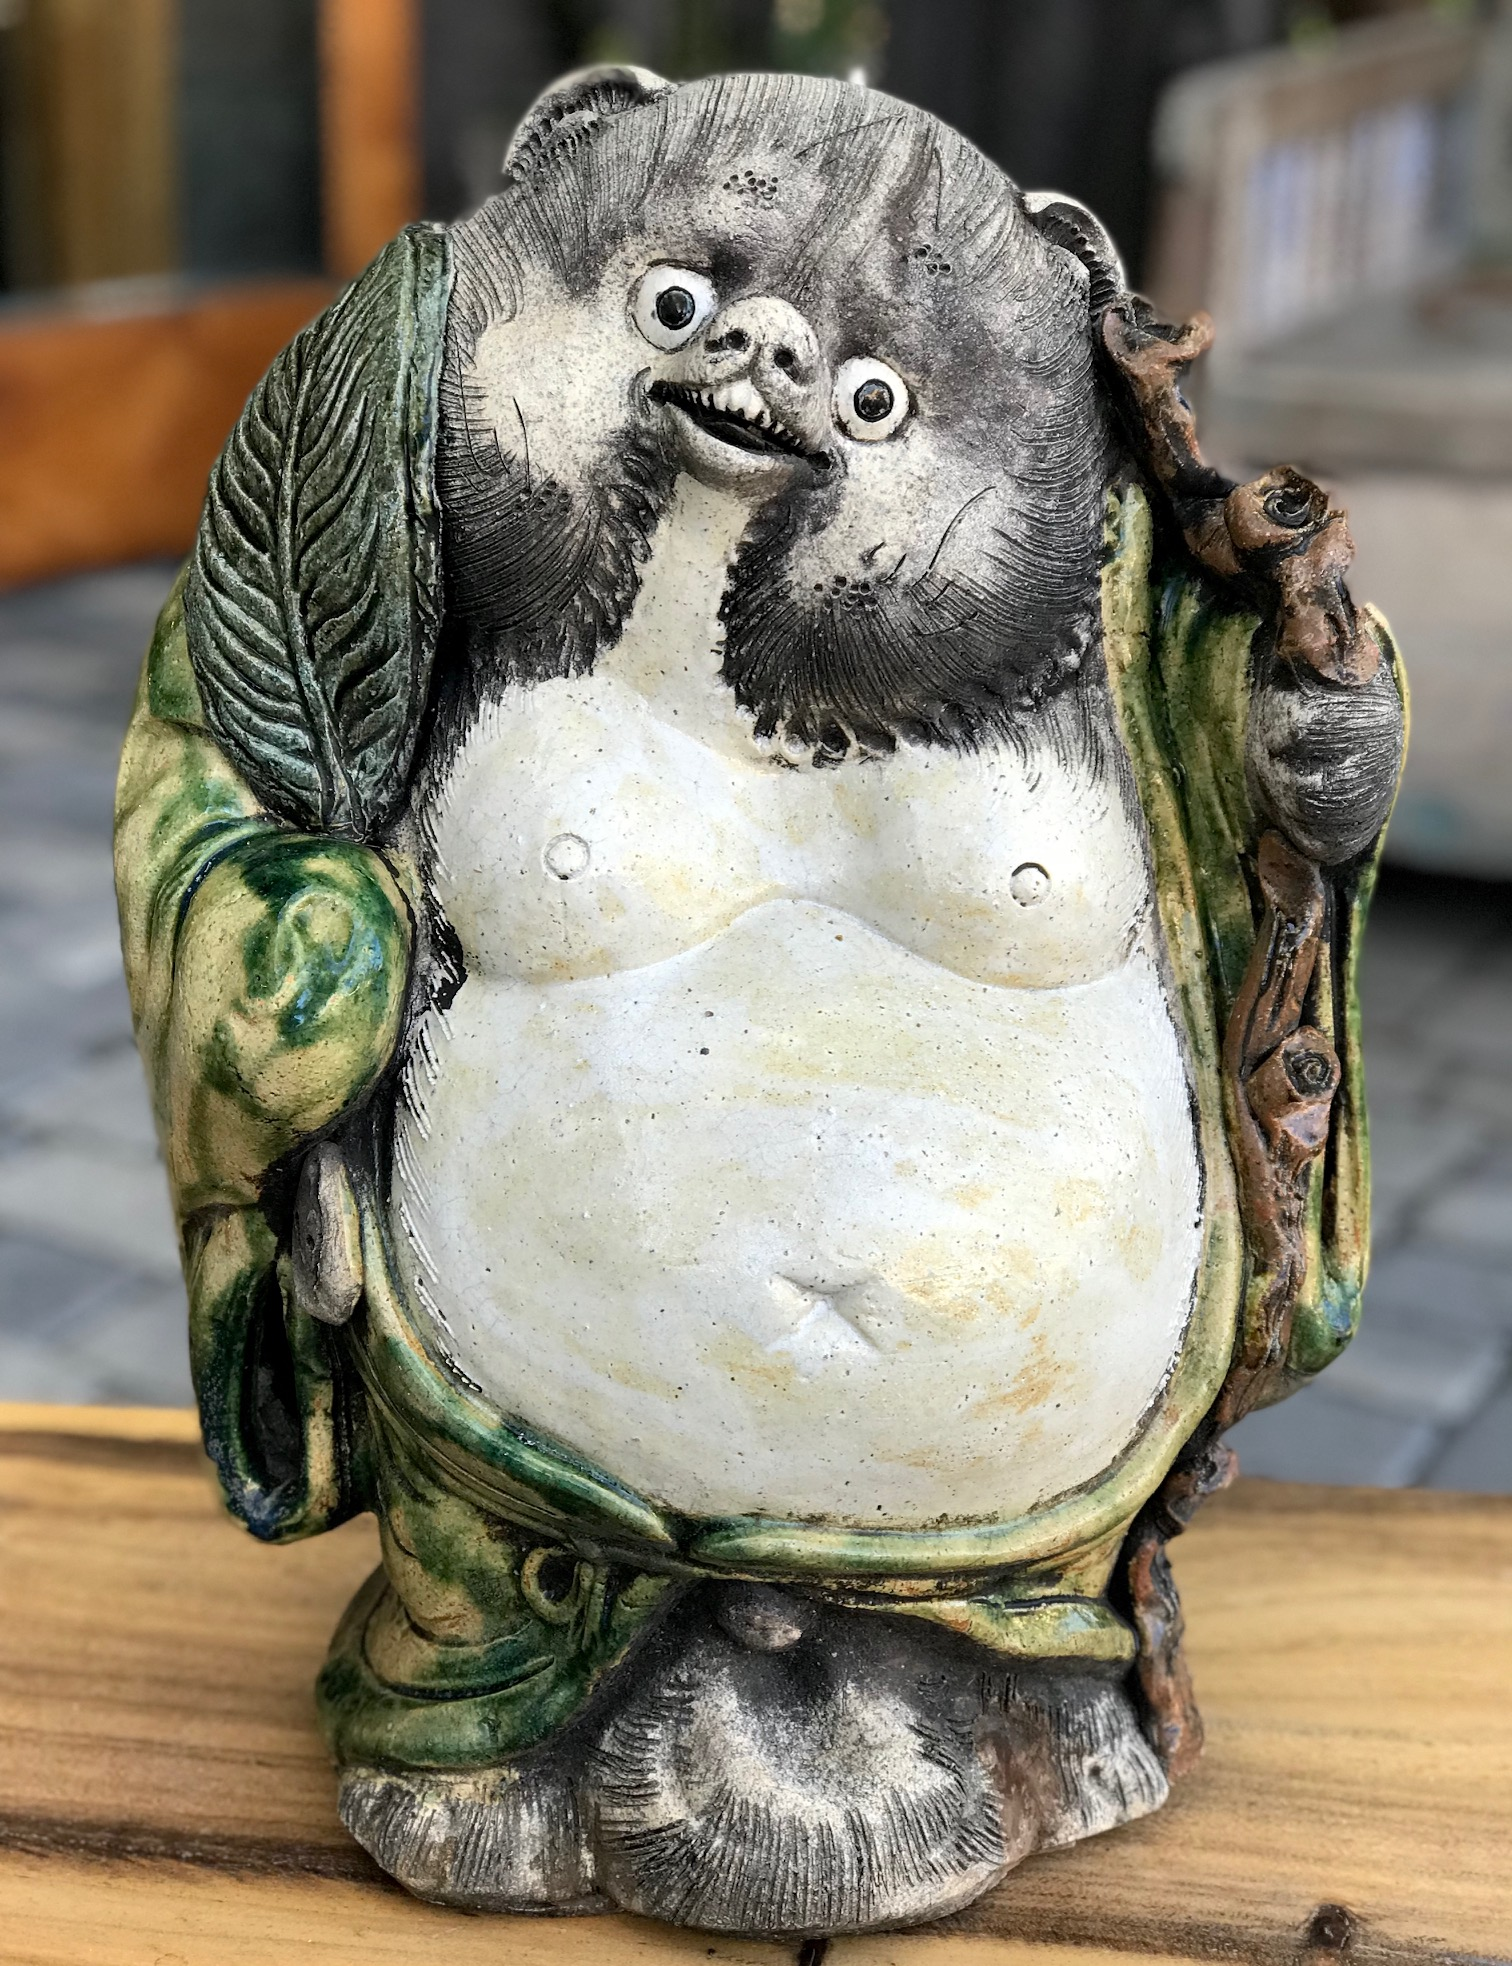 """Shigaraki Tanuki with green robe and feather, Tanuki have a very complex and interesting folkloric history. While largely unheard of in the states, Tanuki have been among the most significant characters in Japan since ancient times. Contemporary Tanuki are primarily a welcoming symbol of prosperity. In the mid 20th century the character was adapted, both visually and symbolically, to suit modern culture and, although they retain much of their prankster persona from the original 16th century creatures, they are much more benign. They have a long list of supernatural powers, most notable shape-shifting. Ancient Tanuki, humorously portrayed in block prints are now mostly found in museums and private collections. Tanuki statues are often found in restaurant or shop windows and outside temples. Famous for getting drunk and not paying their bills, they are usually portrayed wearing a straw hat and carrying a flask of sake and a ledger of promissory notes. Thus they can also serve as cautionary figures against the hazards of overindulging in alcohol. They always have big bellies and humorously large testicles which they use as drums. 18"""" x 12"""" x 13 1/2"""" x 12 1/2"""", $675., thedavidalancollection.com , solana beach, ca"""